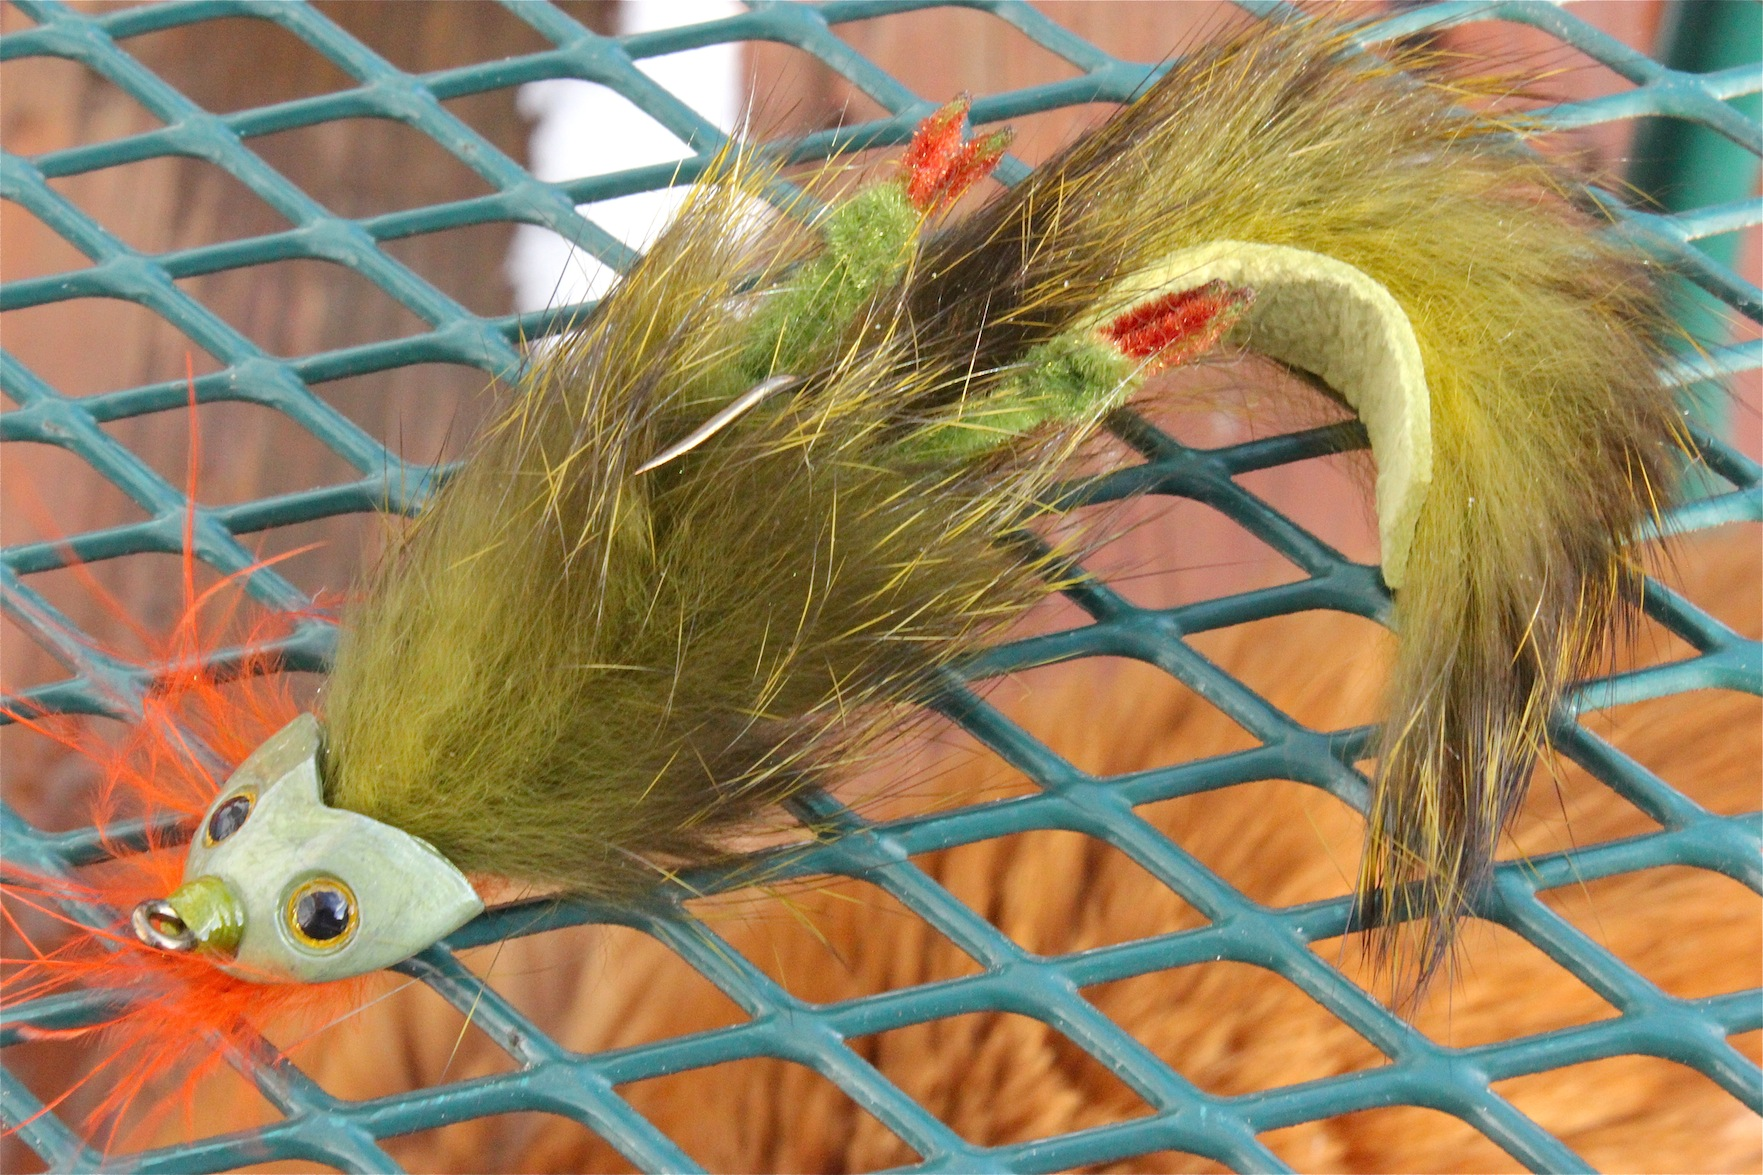 Paul Jensen, owner of Jensen Jigs,  has been tying hair jigs for decades. Sometimes he just sits